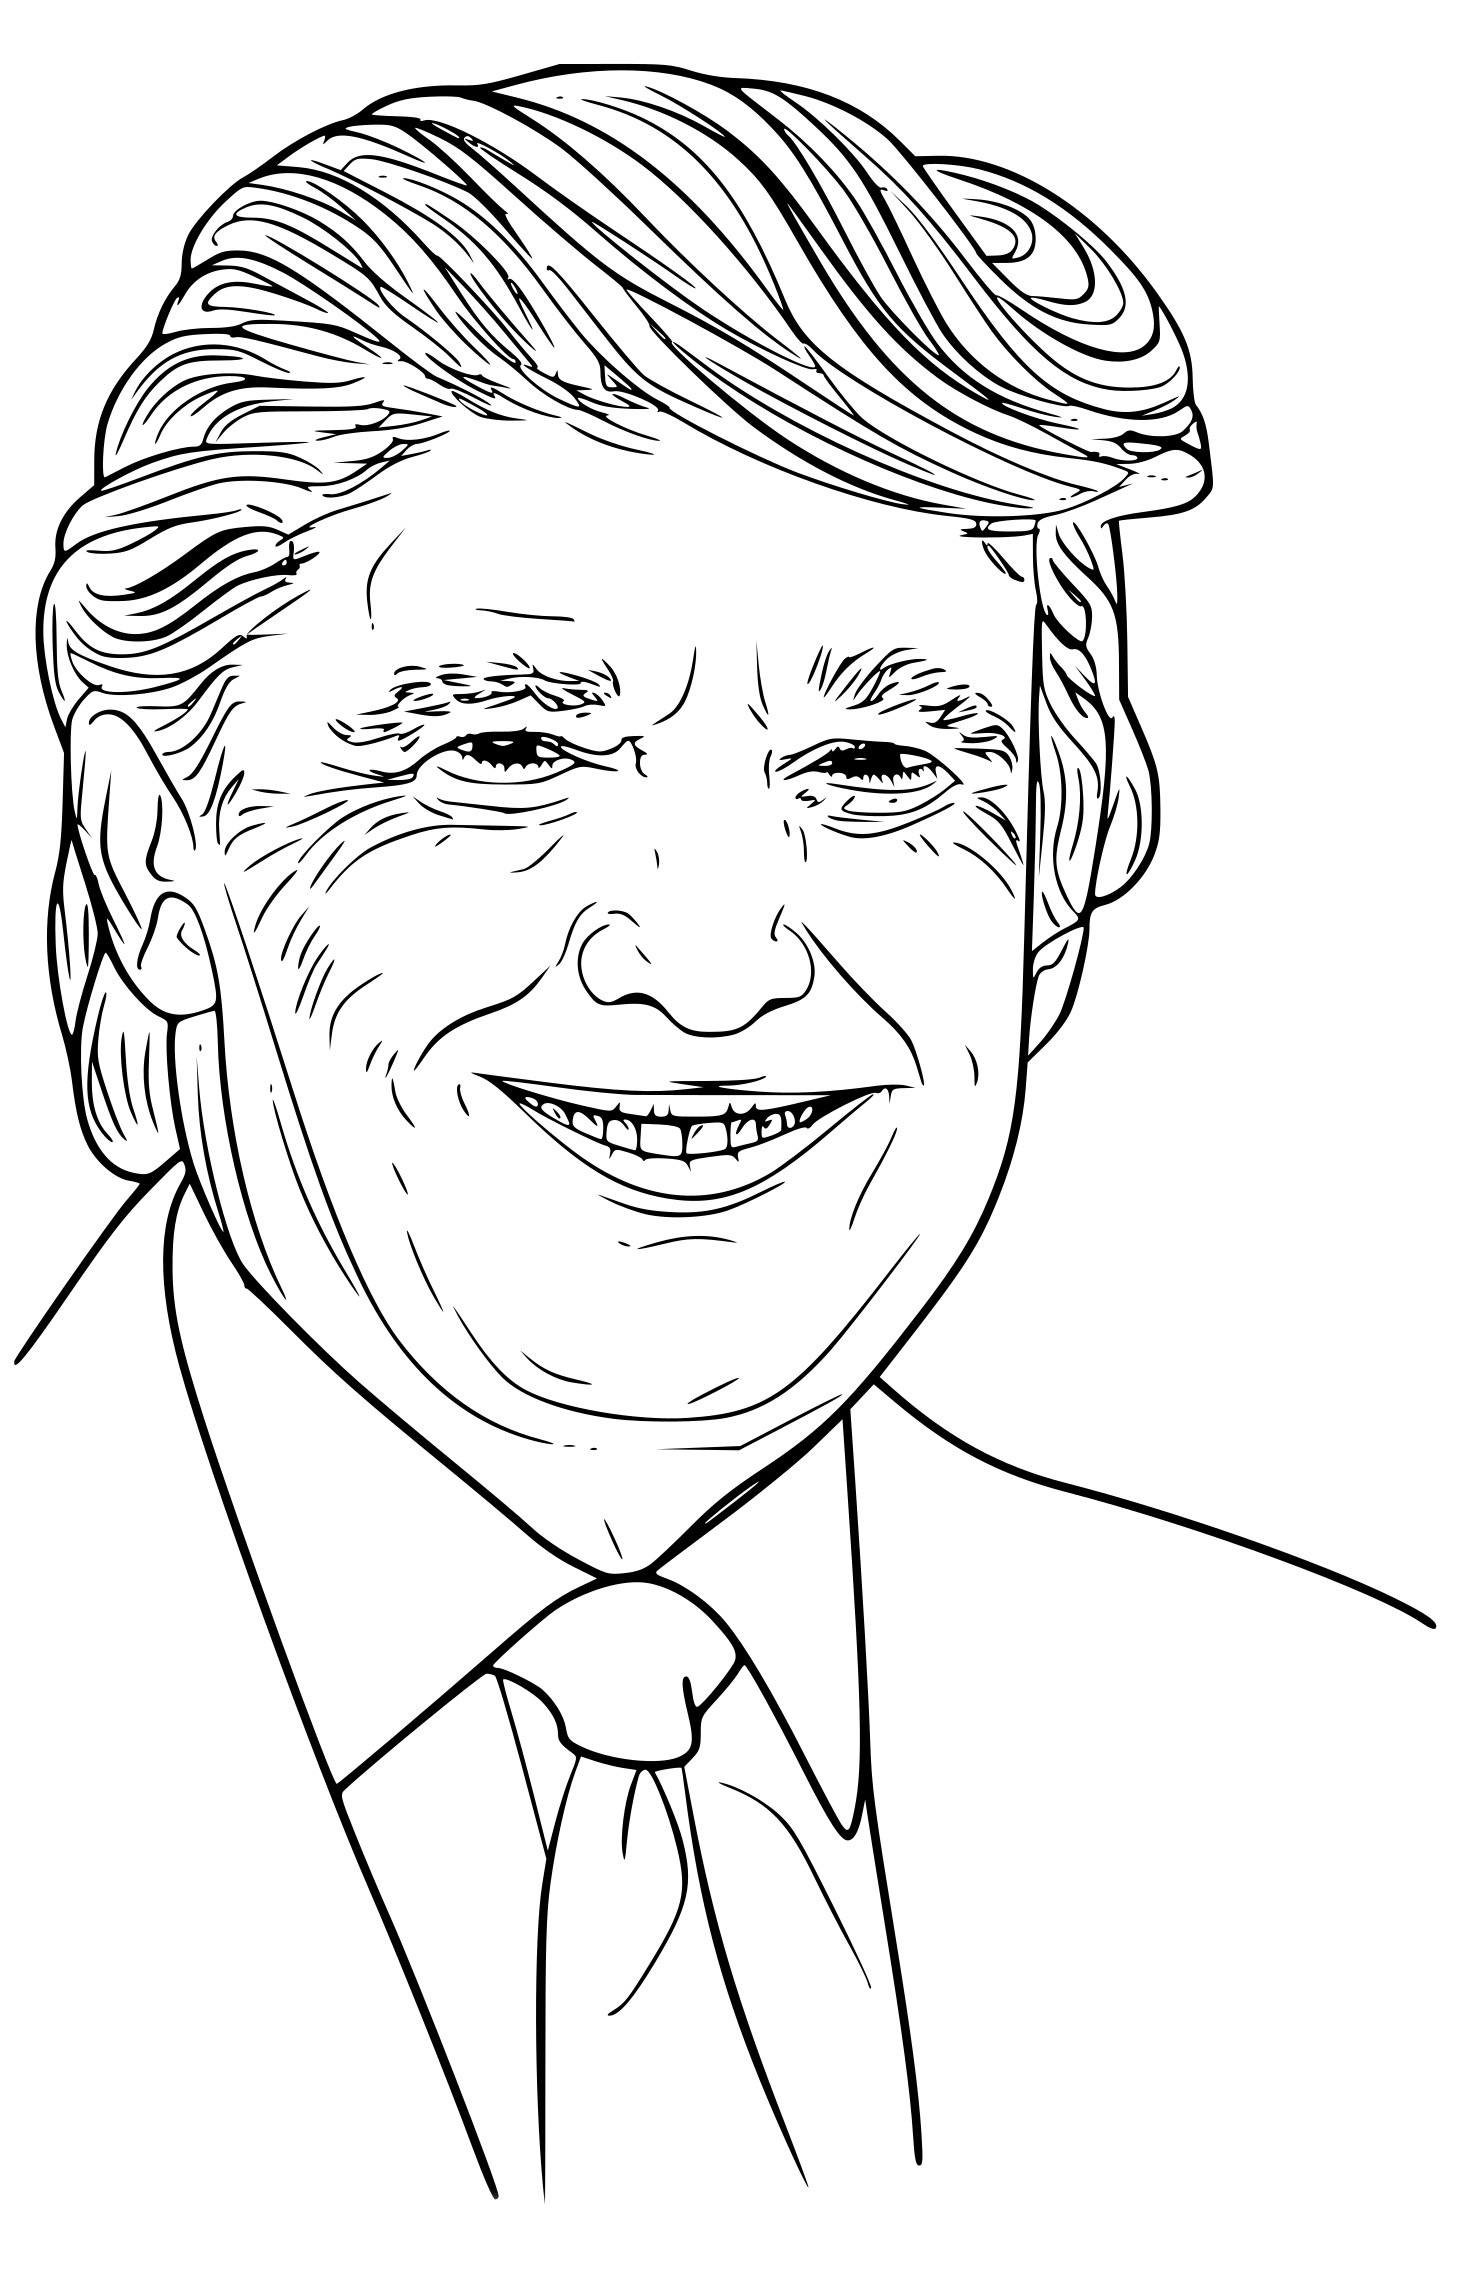 Pin coloriage donald coloriages on pinterest - Donald coloriage ...